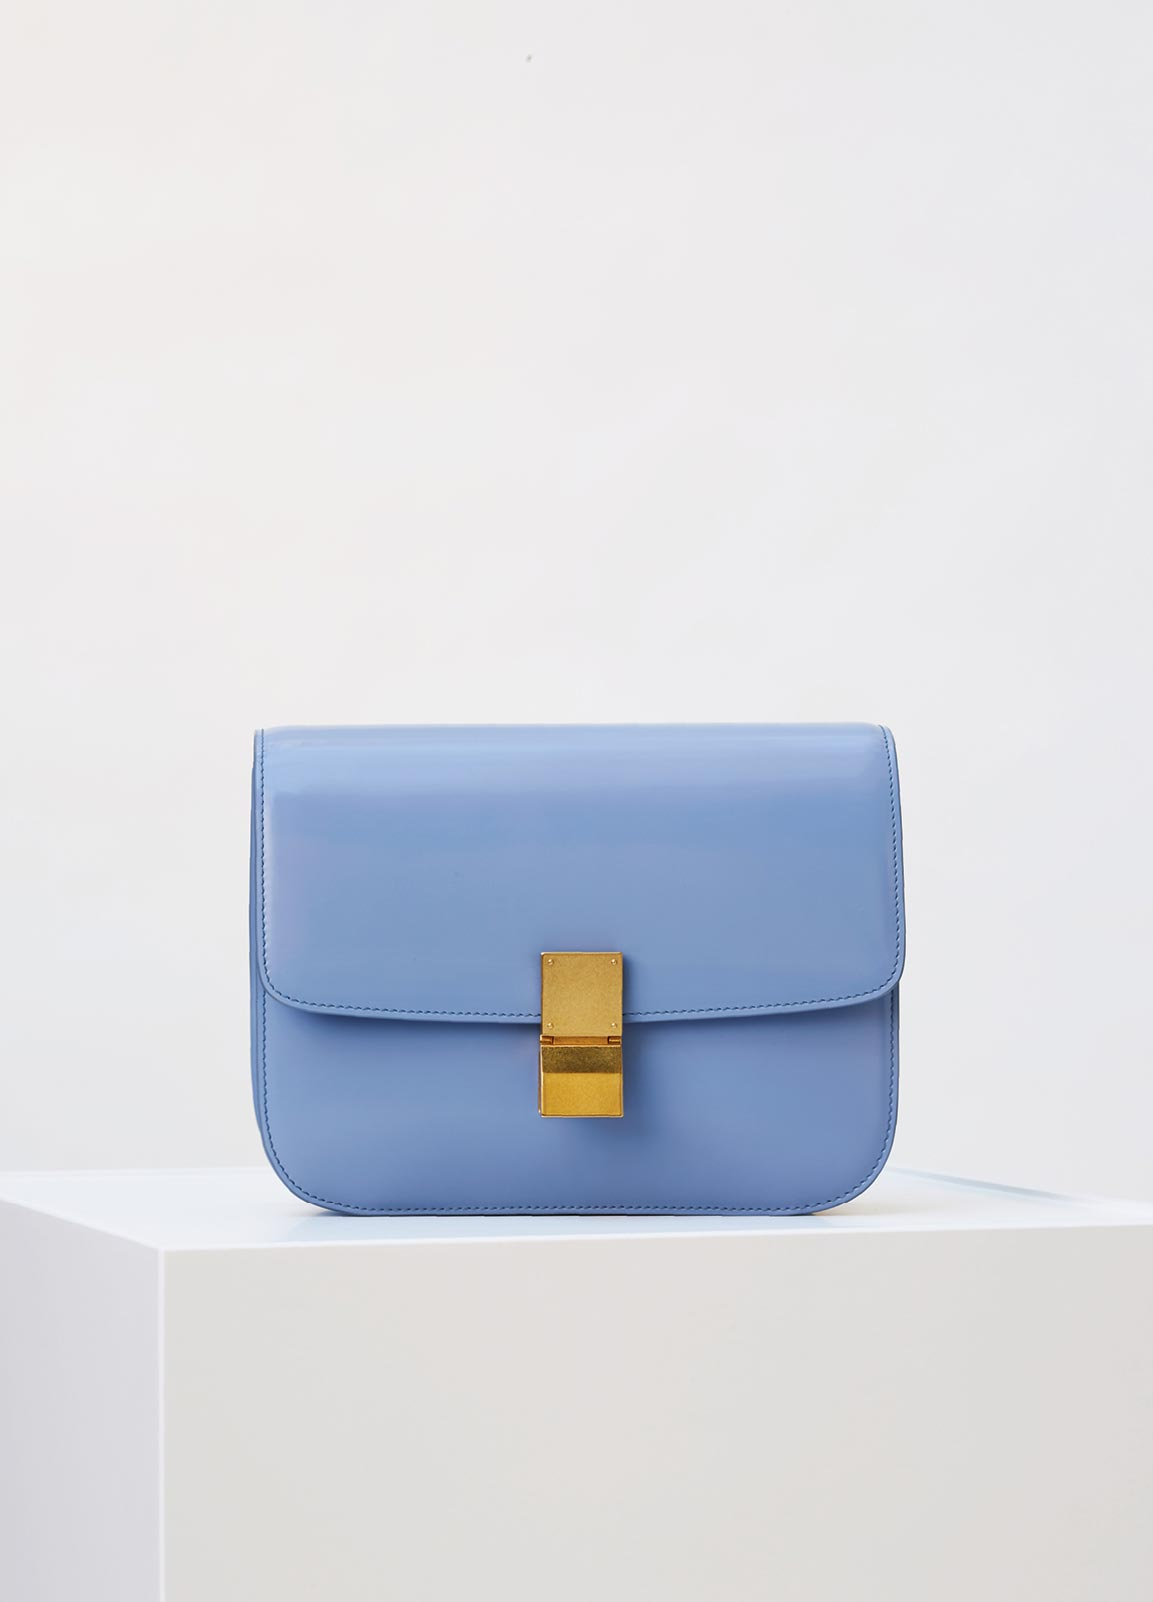 627b8012a69b Celine Winter 2016 Bag Collection featuring Pastels